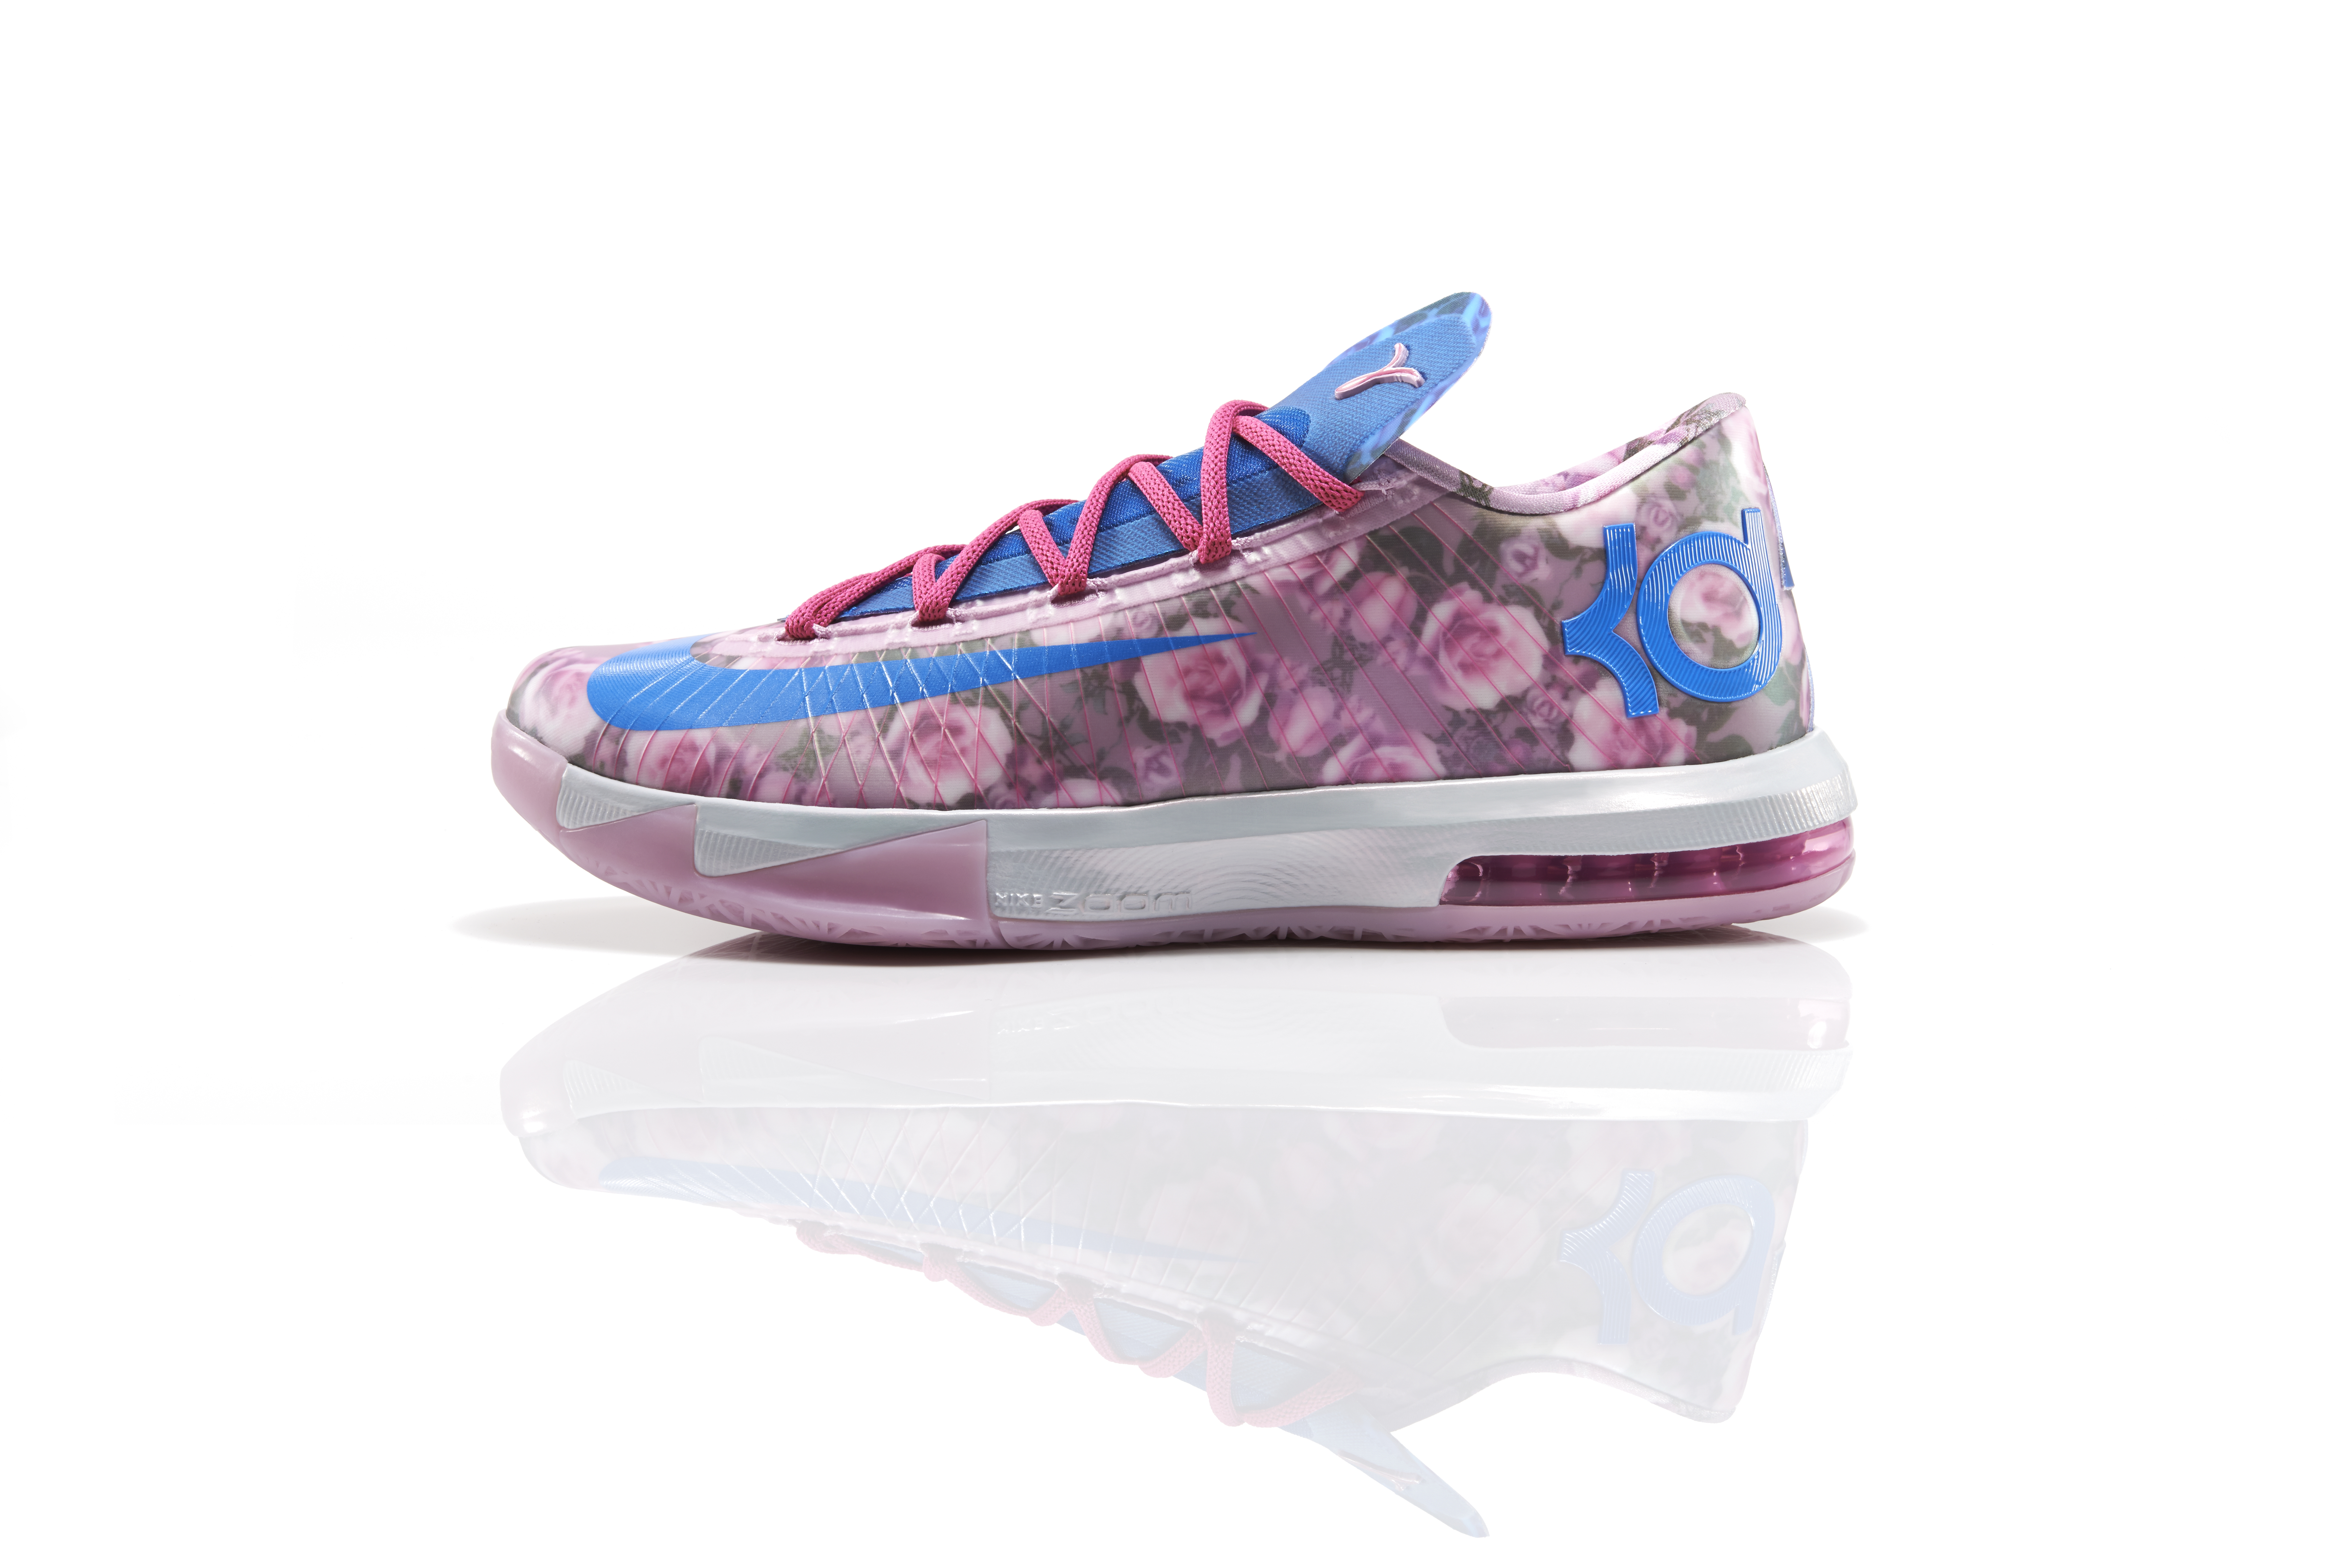 real kd 6 aunt pearl shoes for sale